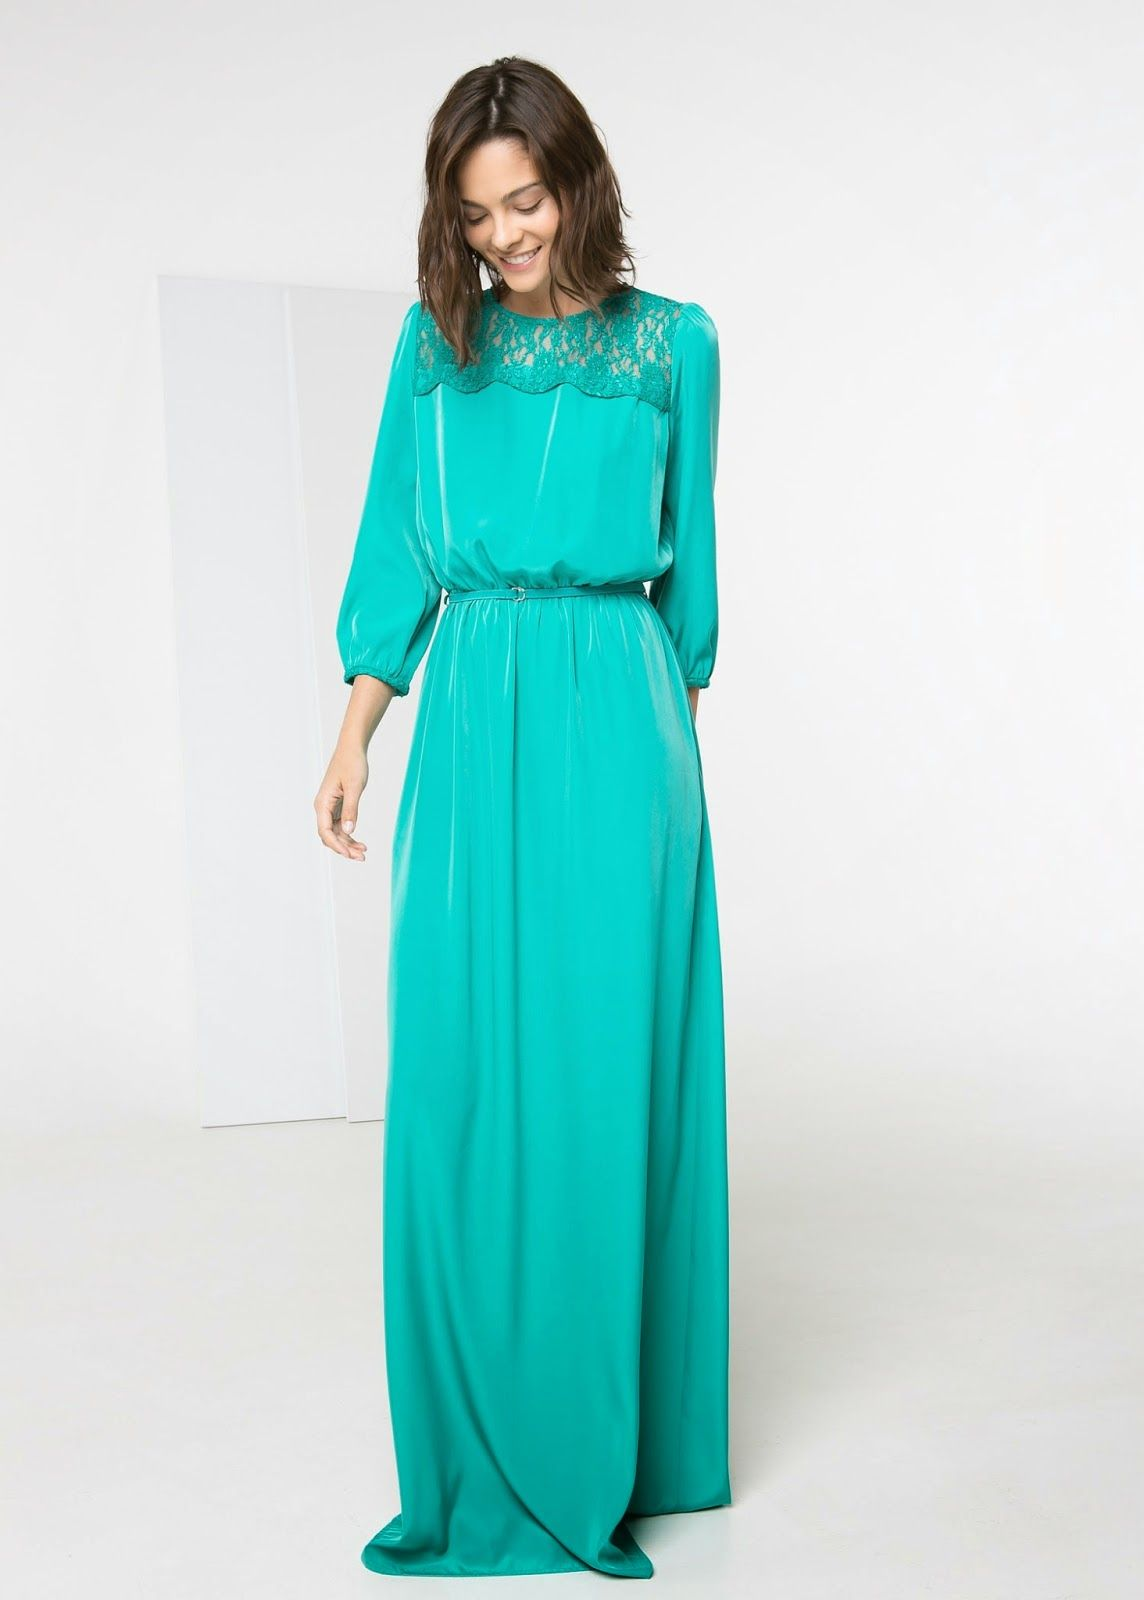 Modest maxi dress with sleeves | Follow Mode-sty for stylish modest clothing #nolayering